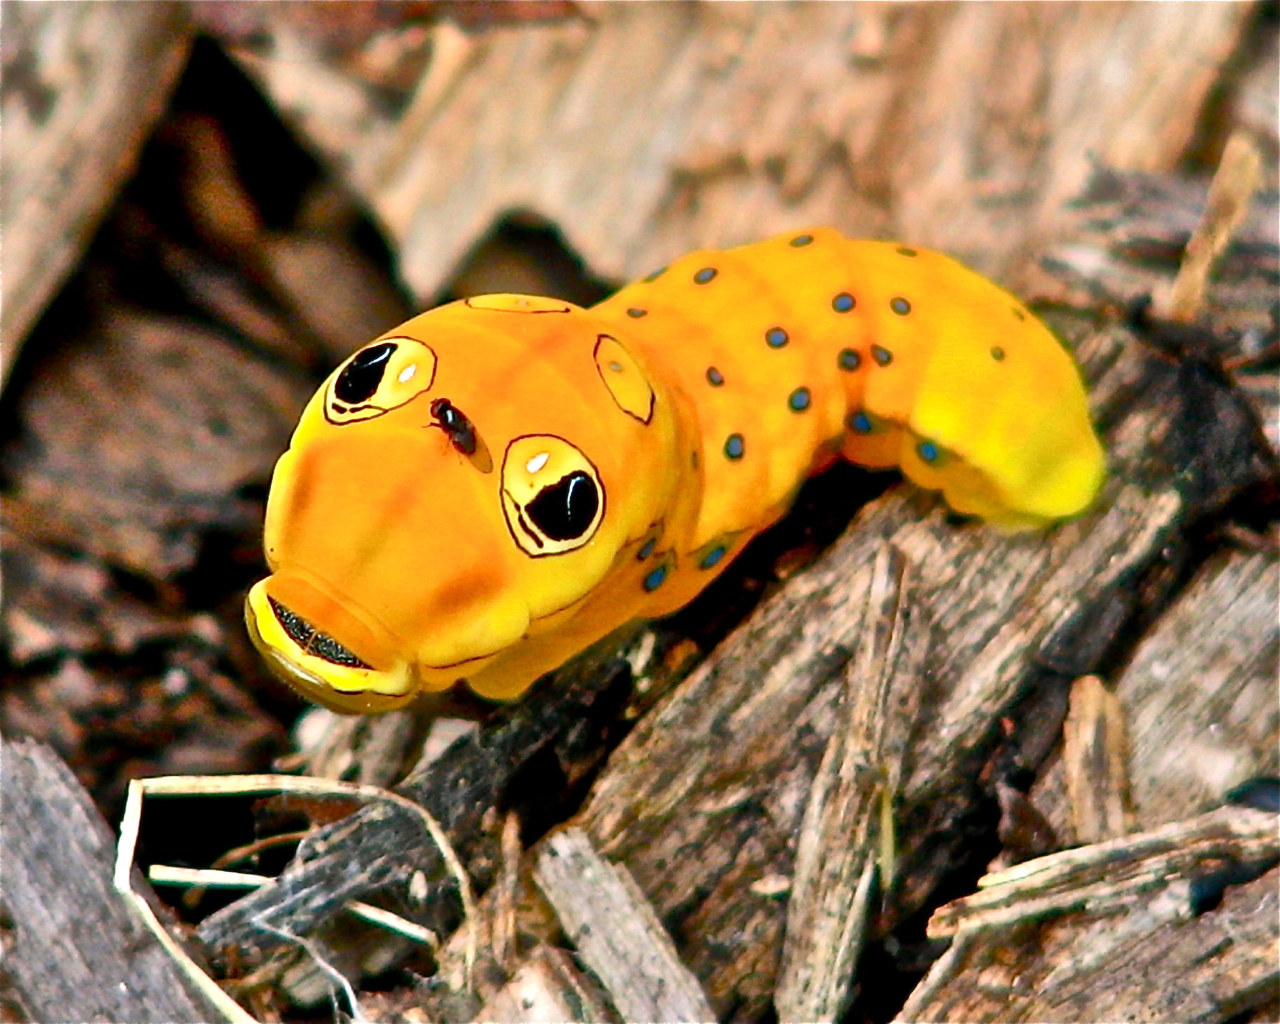 Selected for display. Priscilla Bollinger: Spicebush Swallowtail Butterfly Caterpillar. Randolph County.